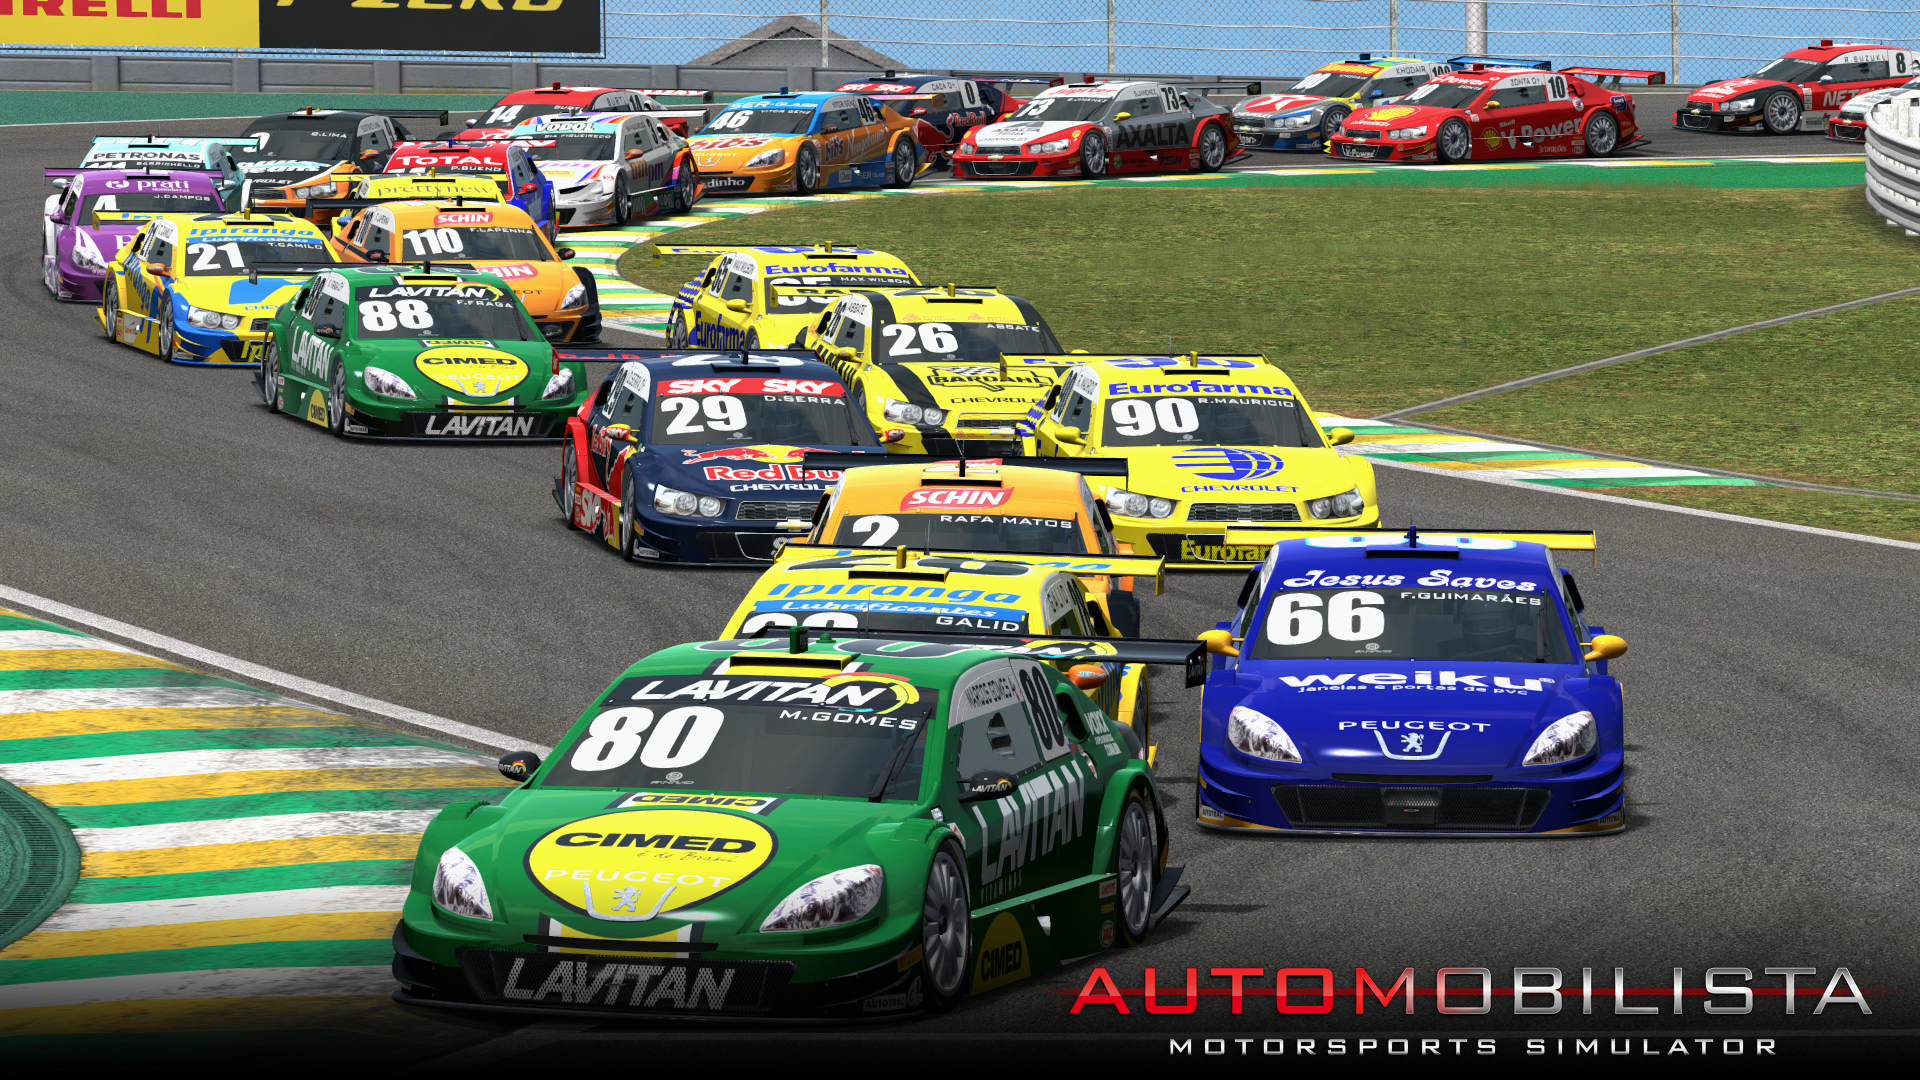 download automobilista-codex cracked full version singlelink iso multi language free for pc